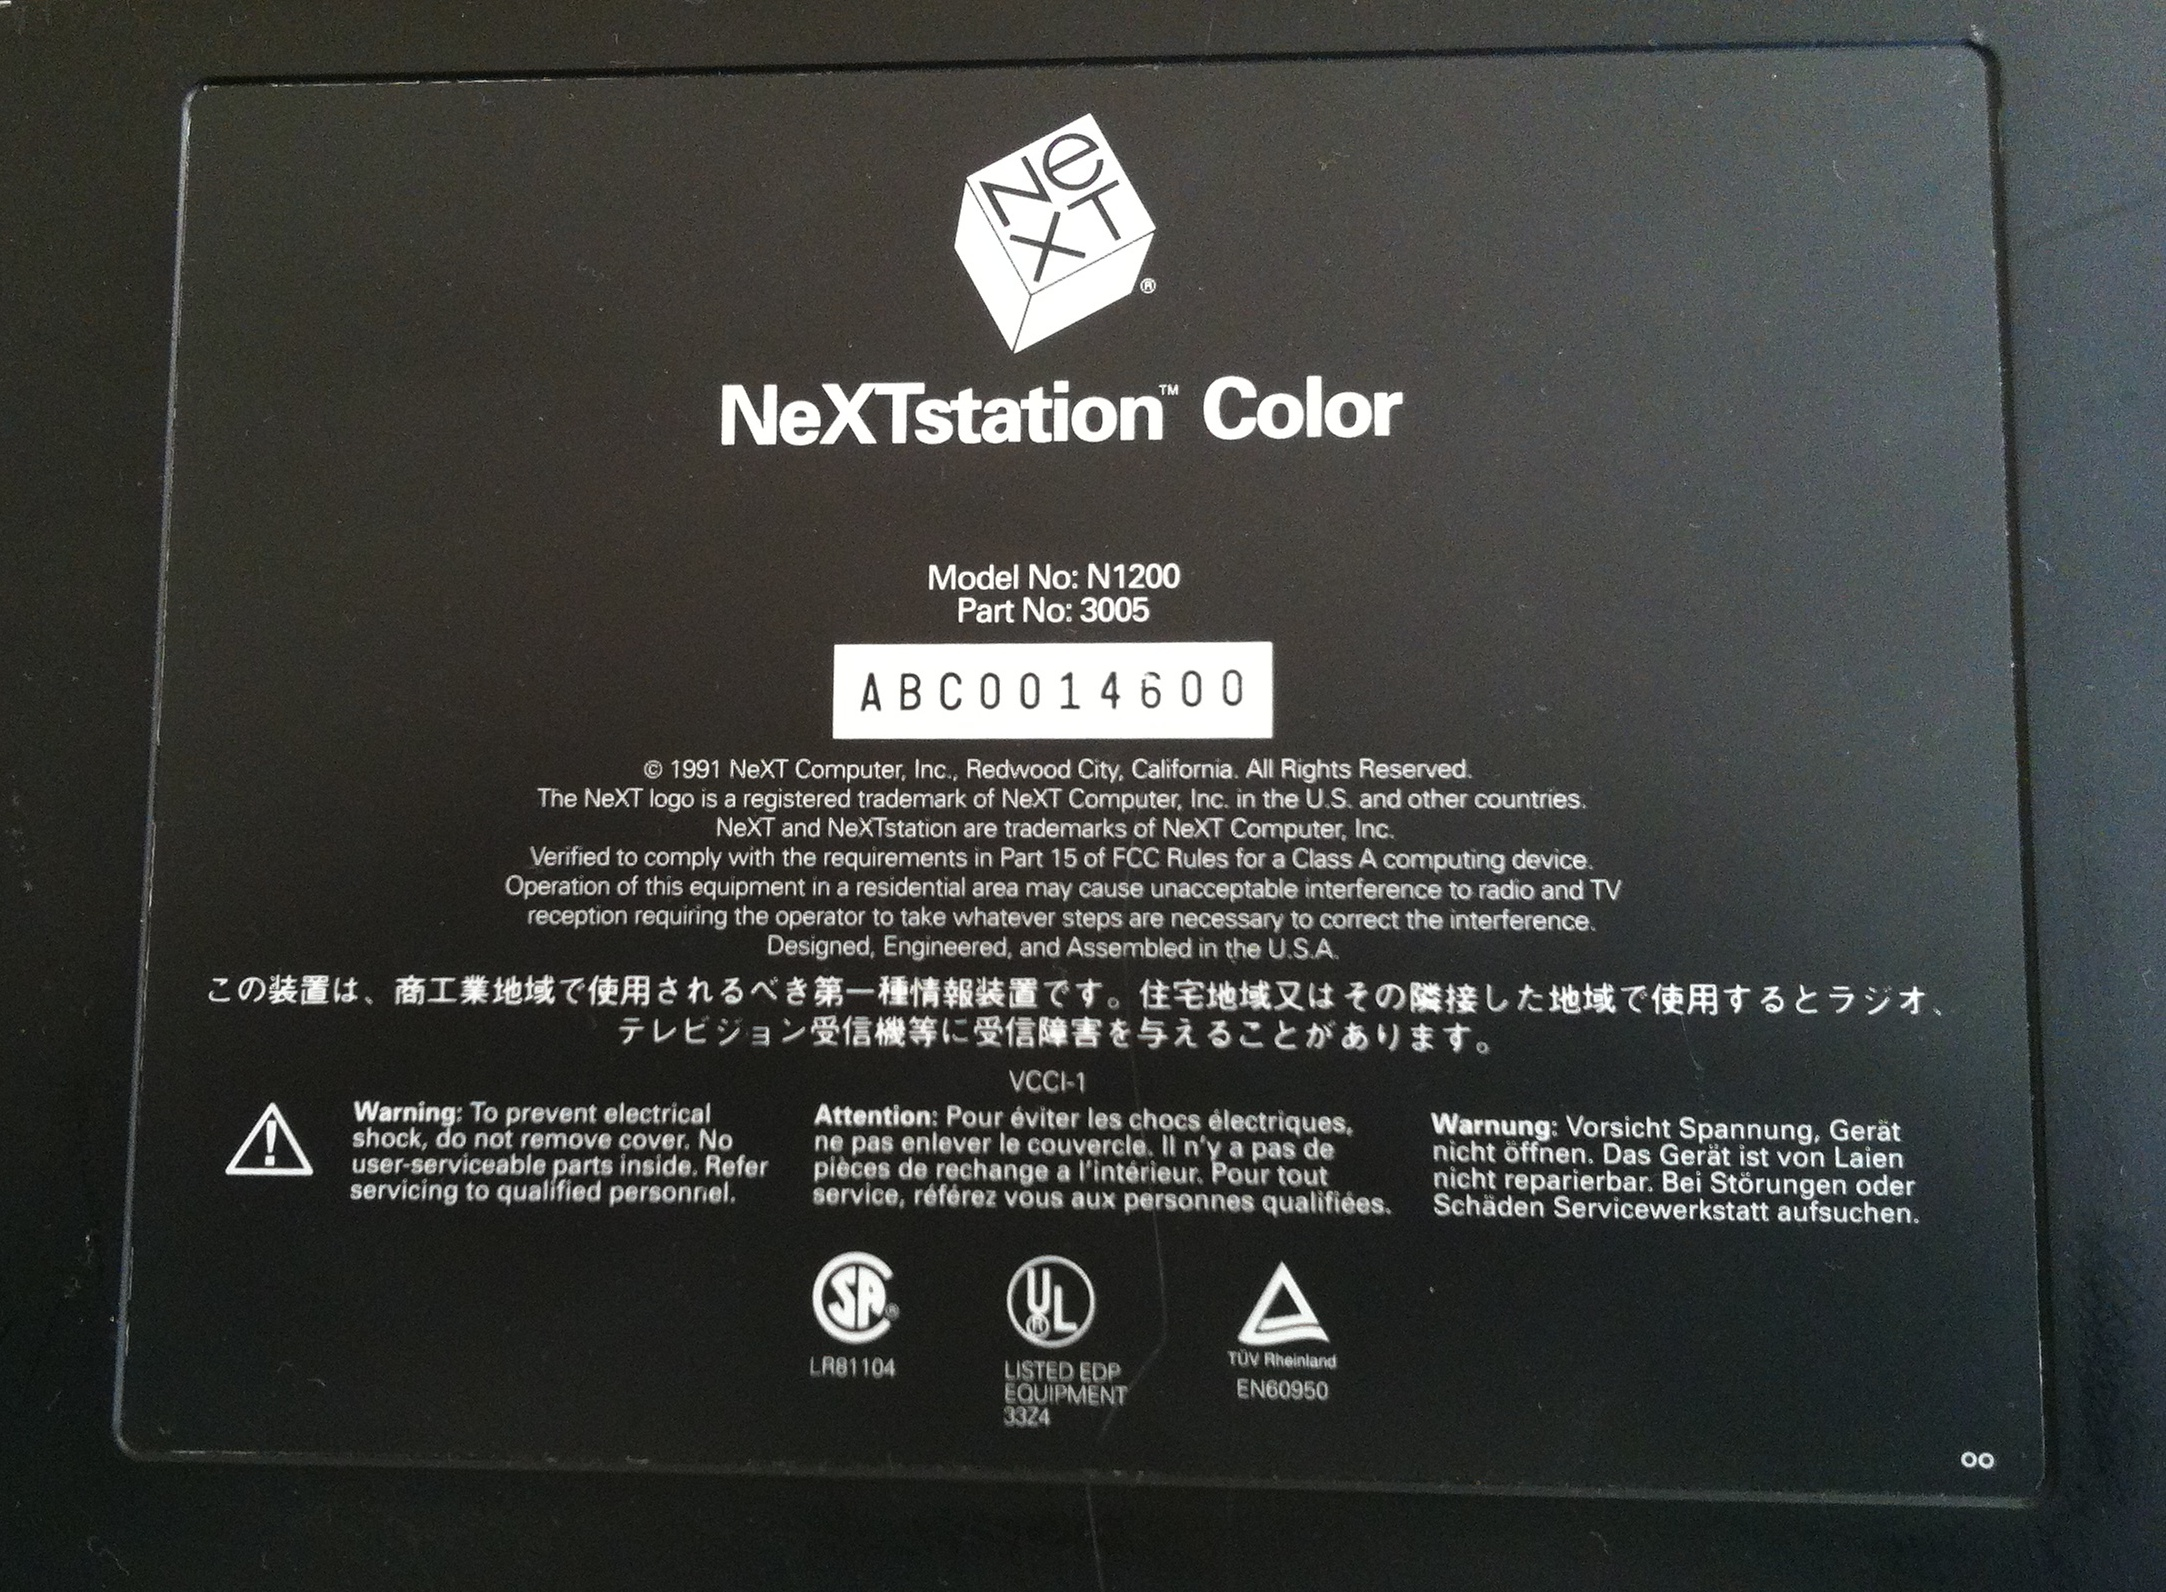 NeXTstation Color